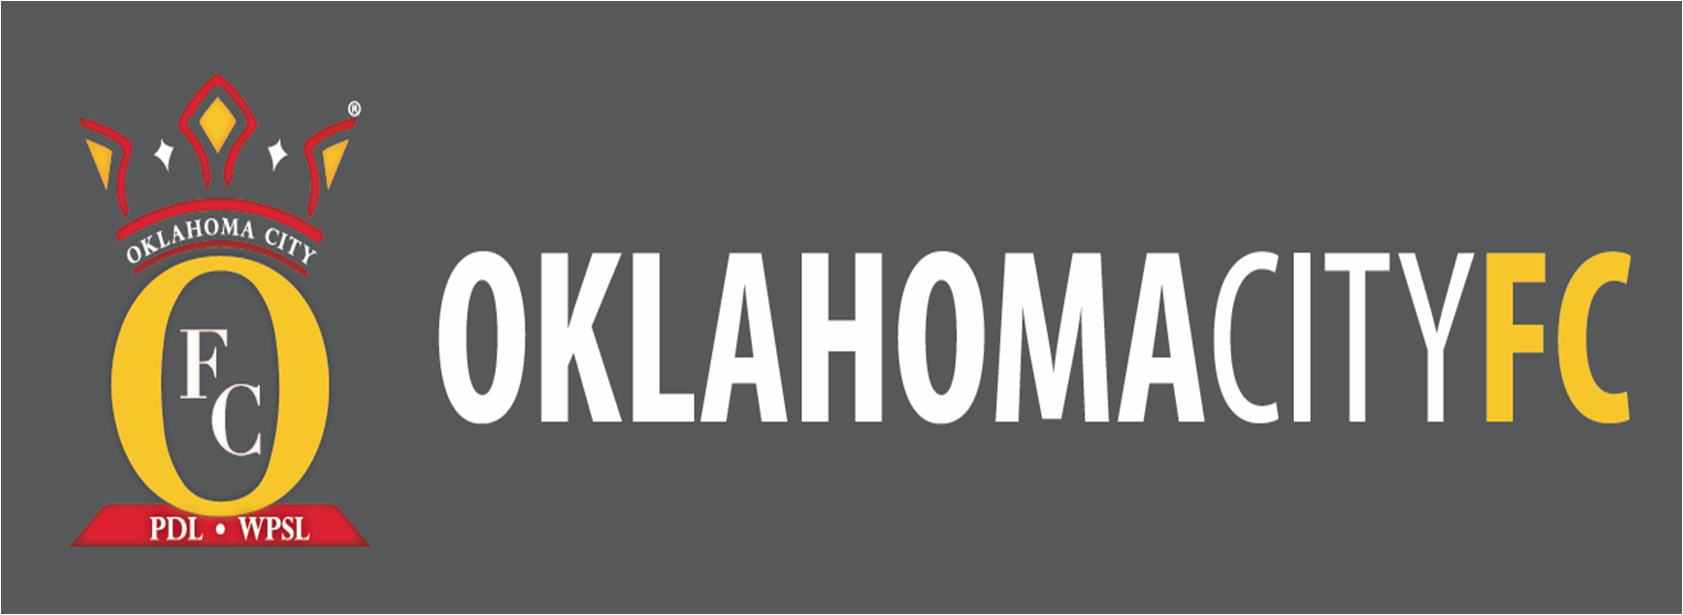 Find tickets from Oklahoma City FC